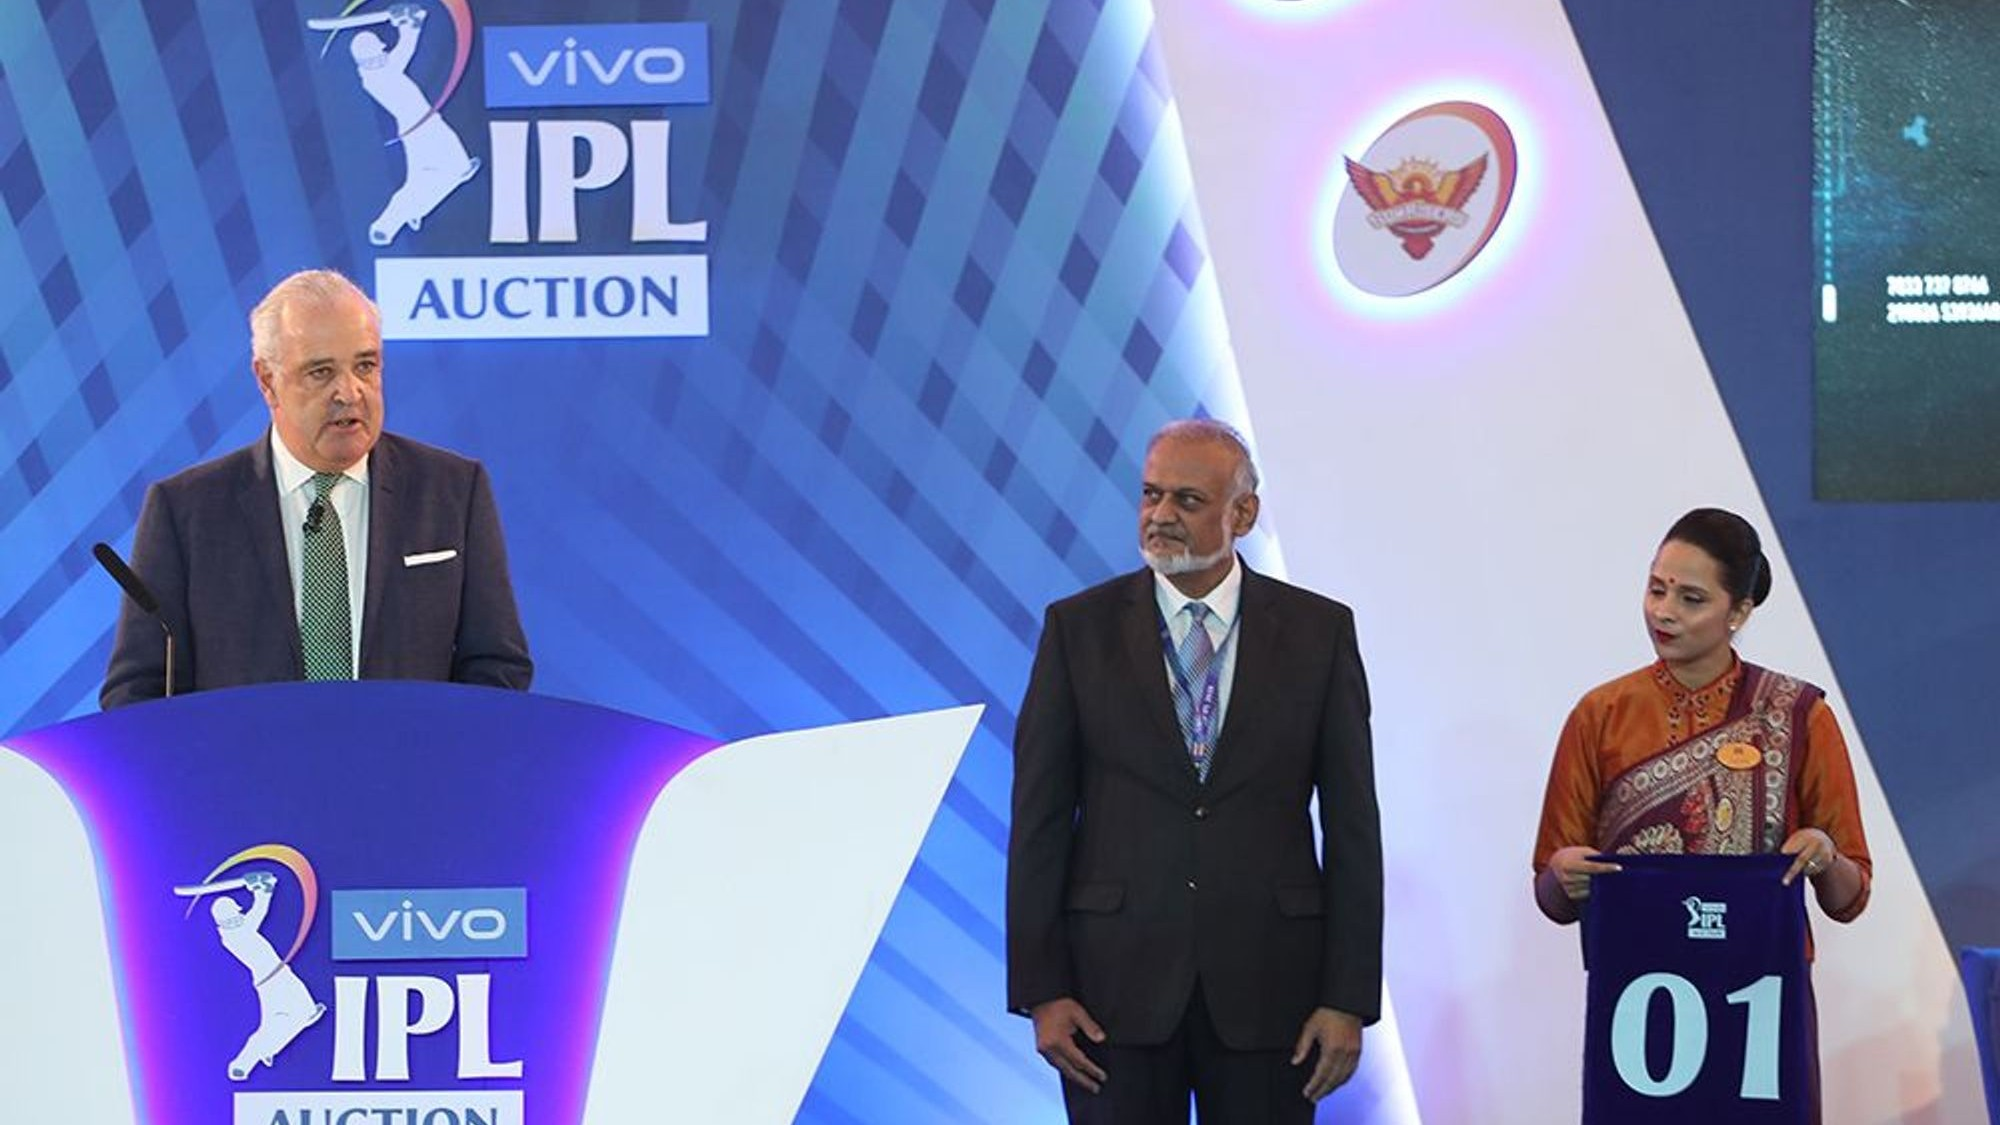 Mega IPL auction; possible Ahmedabad based franchise next year, says reports